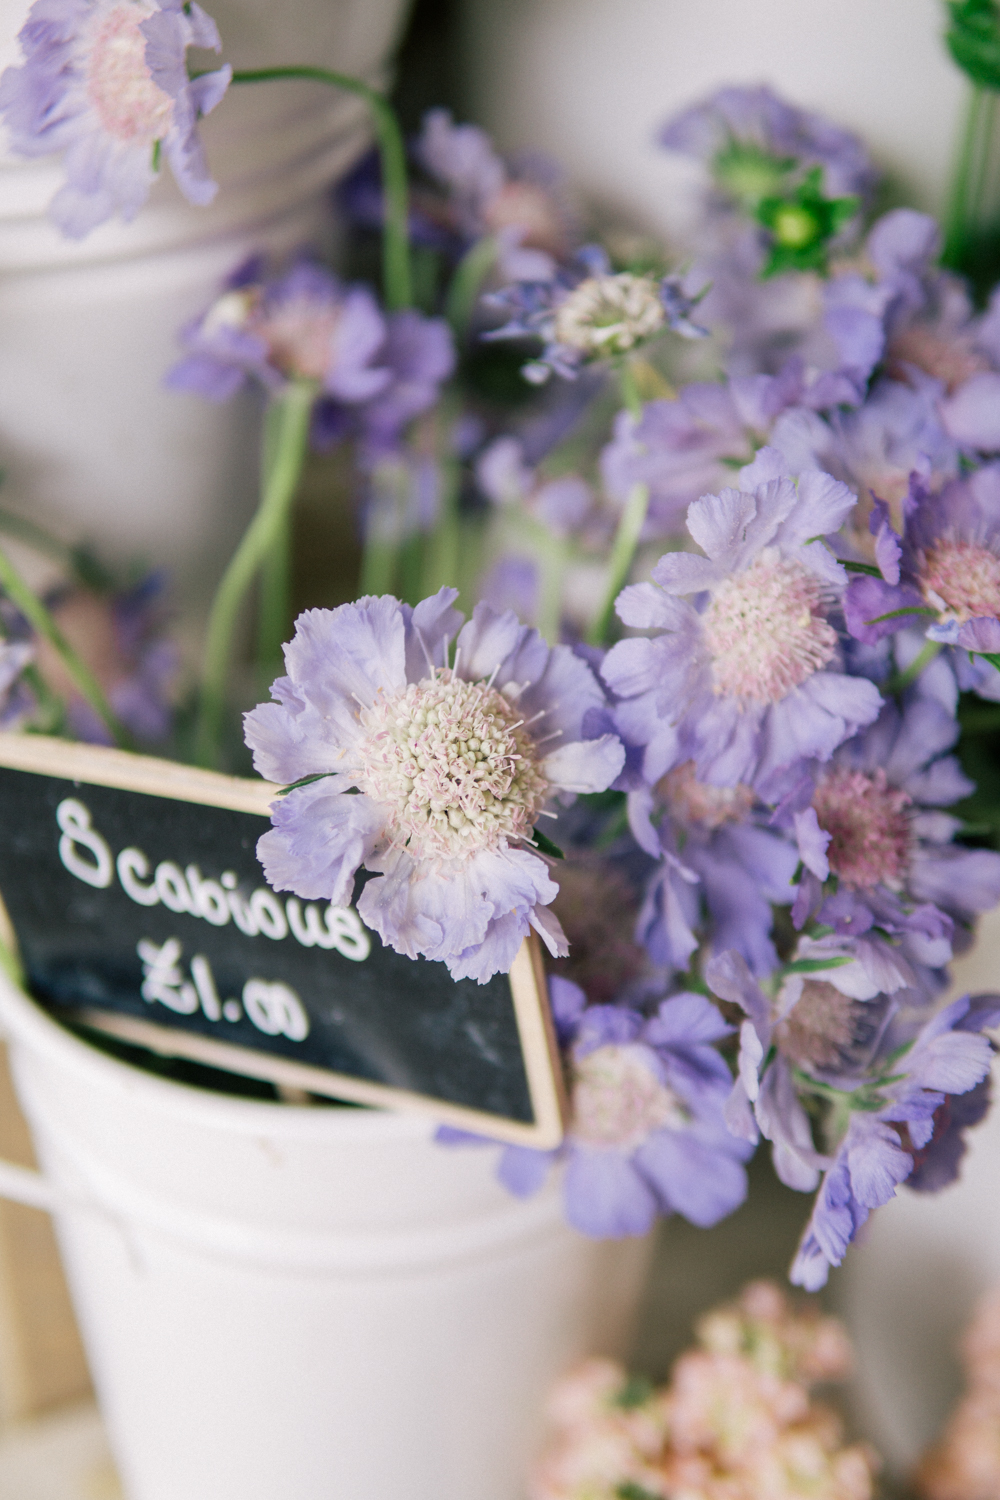 Daylesford-Cotswolds-Barely-There-Beauty-blog-flowers